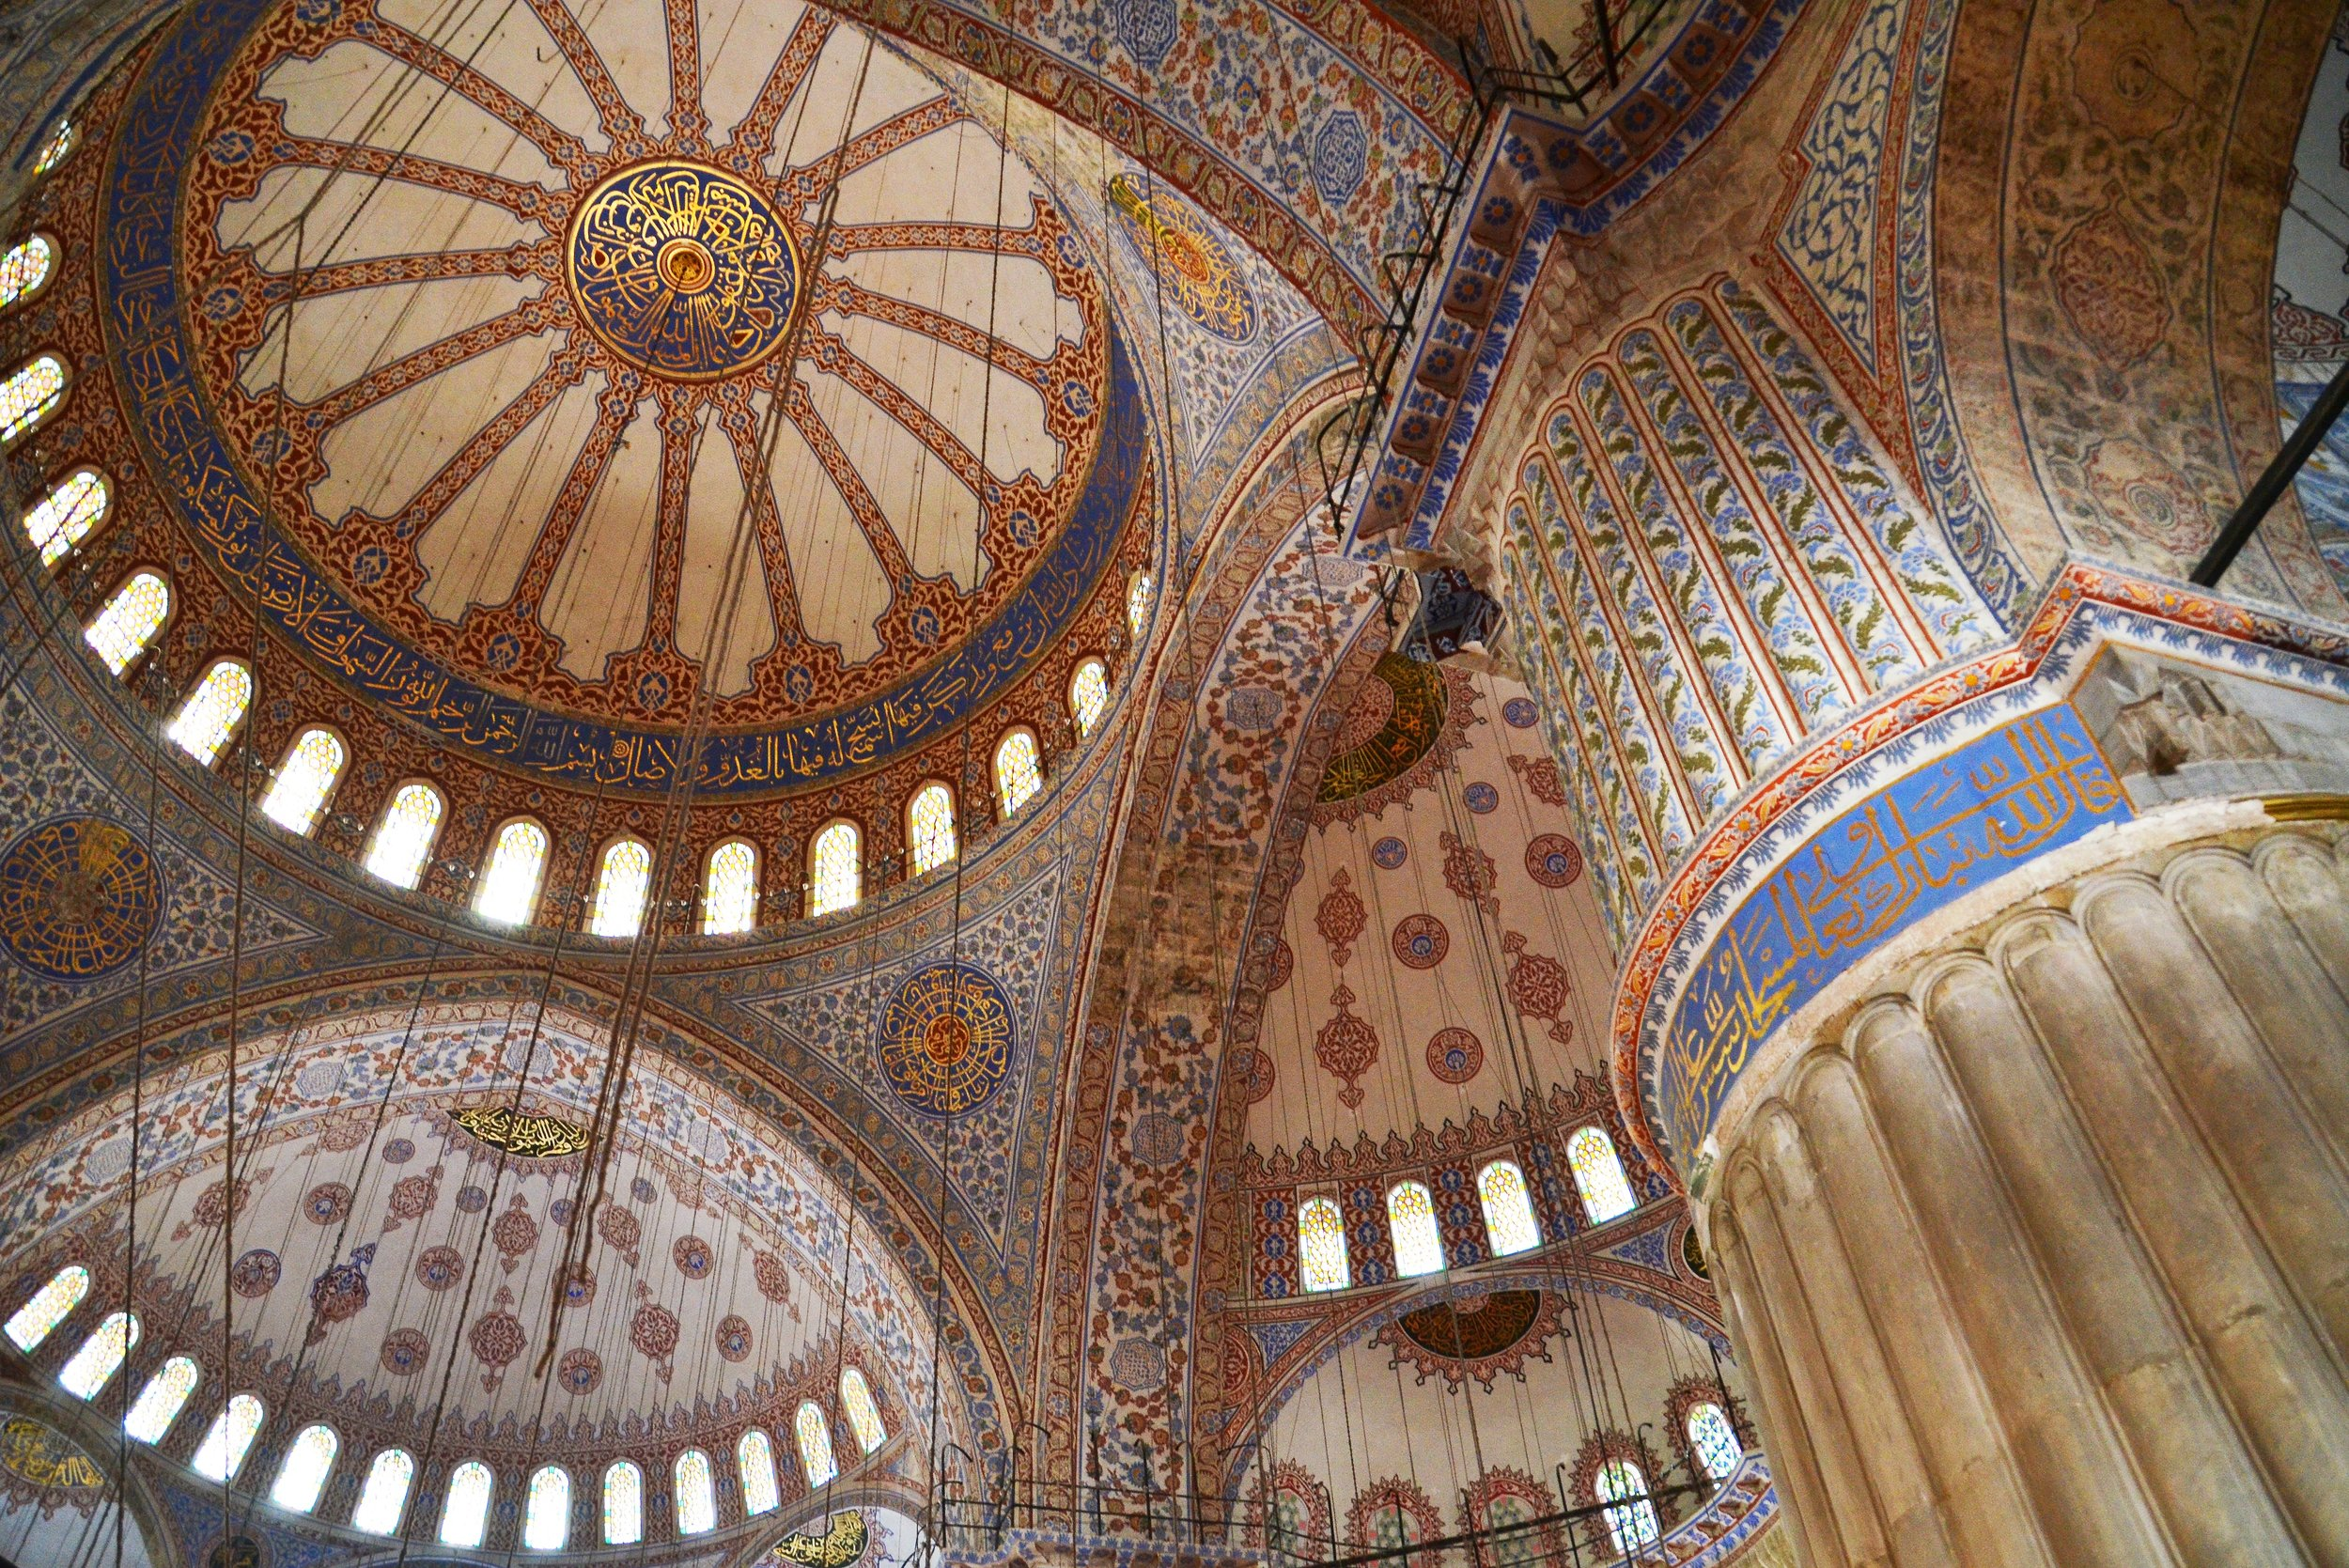 The interior of Sultan Ahmet Mosque - better known as the Blue Mosque